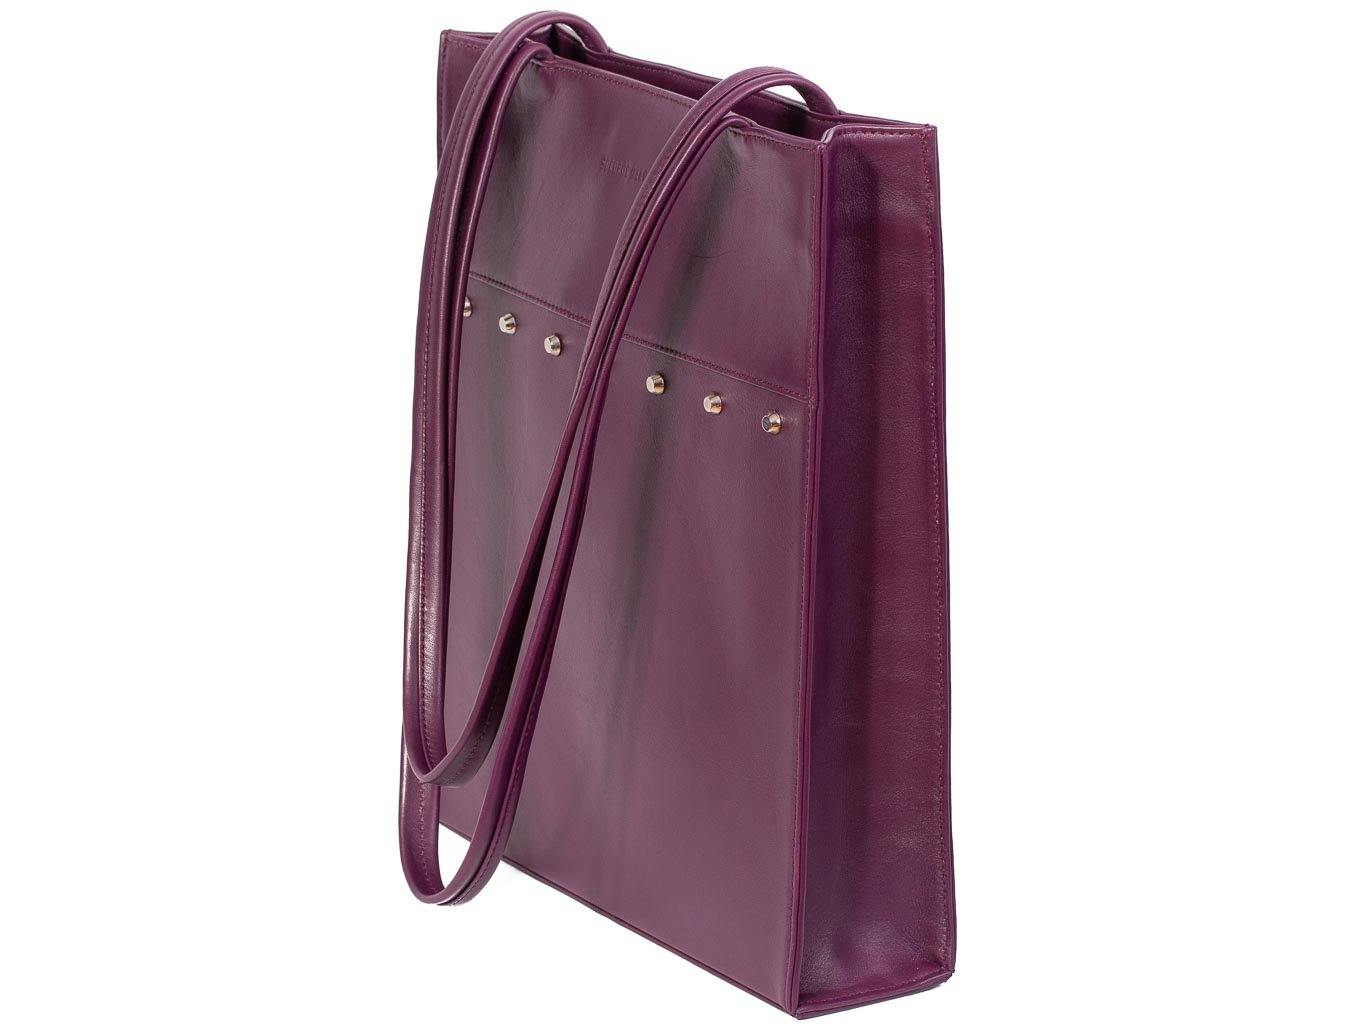 Tote Studded Handbag in Deep Purple by Sherene Melinda side angle strap